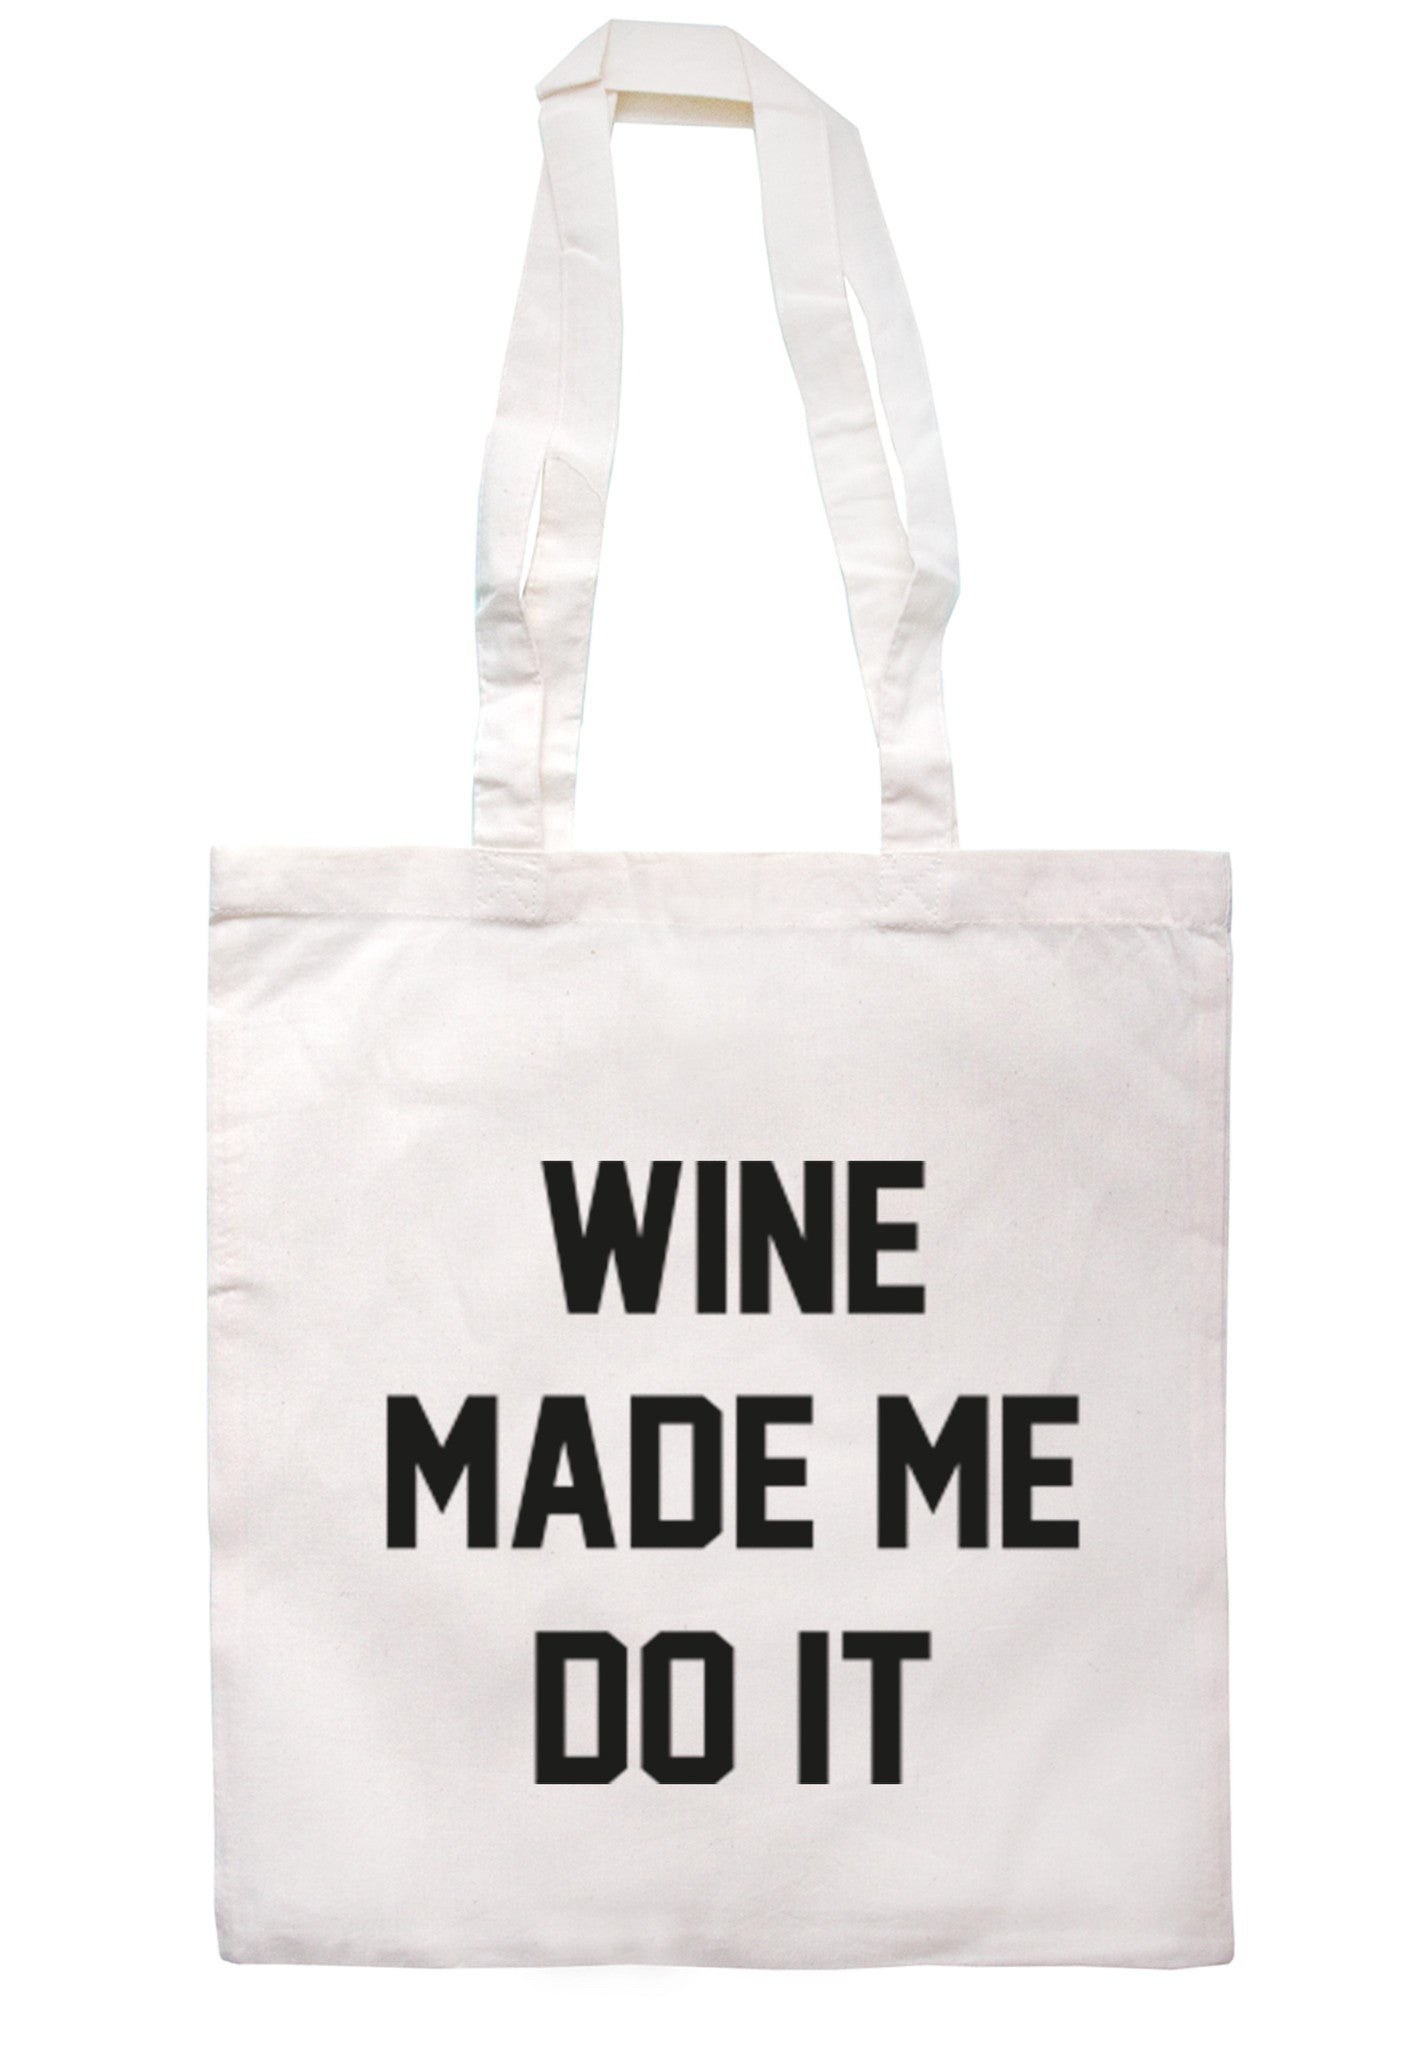 Wine Made Me Do It Tote Bag TB0011 - Illustrated Identity Ltd.